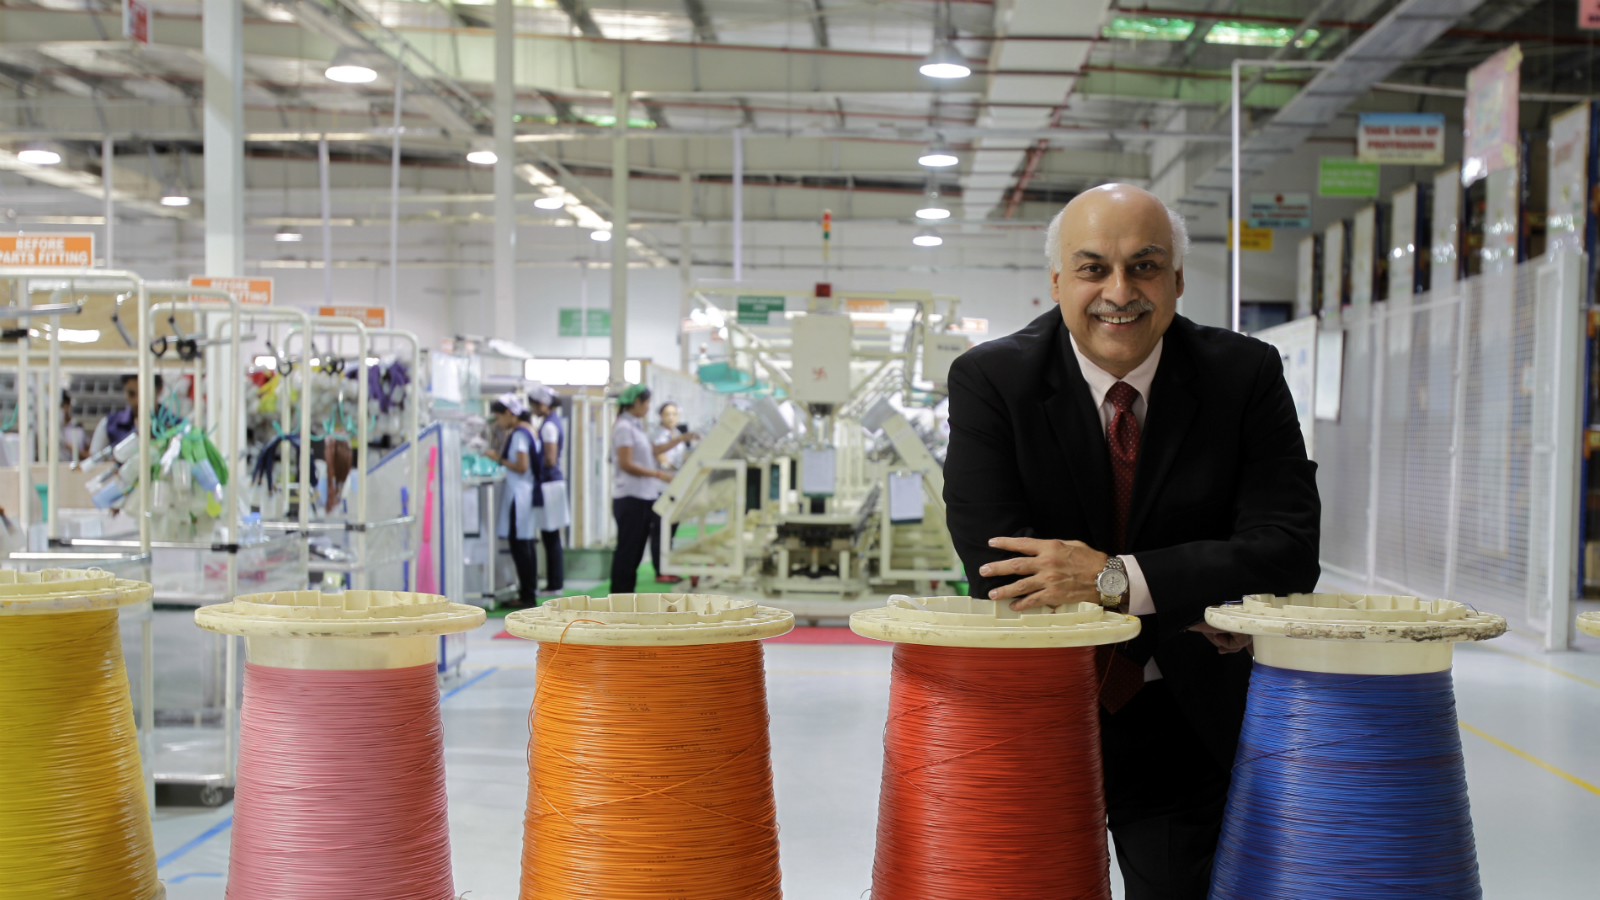 Vivek Chaand (VC) Sehgal, the Vice Chairman of the Motherson Sumi Systems inside his factory in Sharjah, UAE. ()